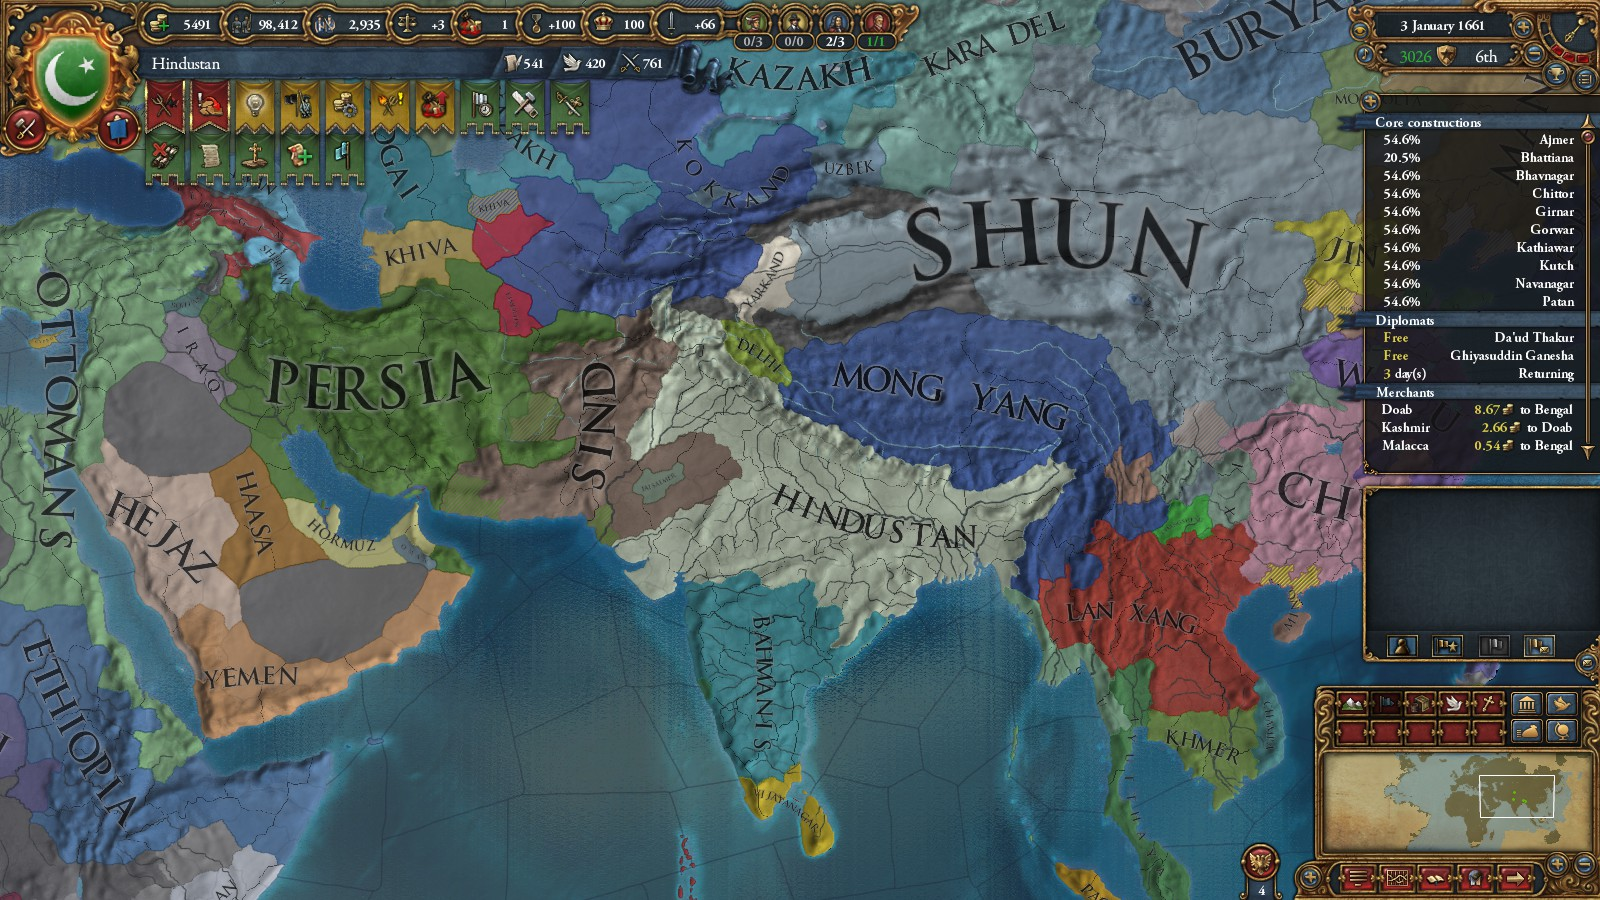 europa universalis why no love round here simhq forums